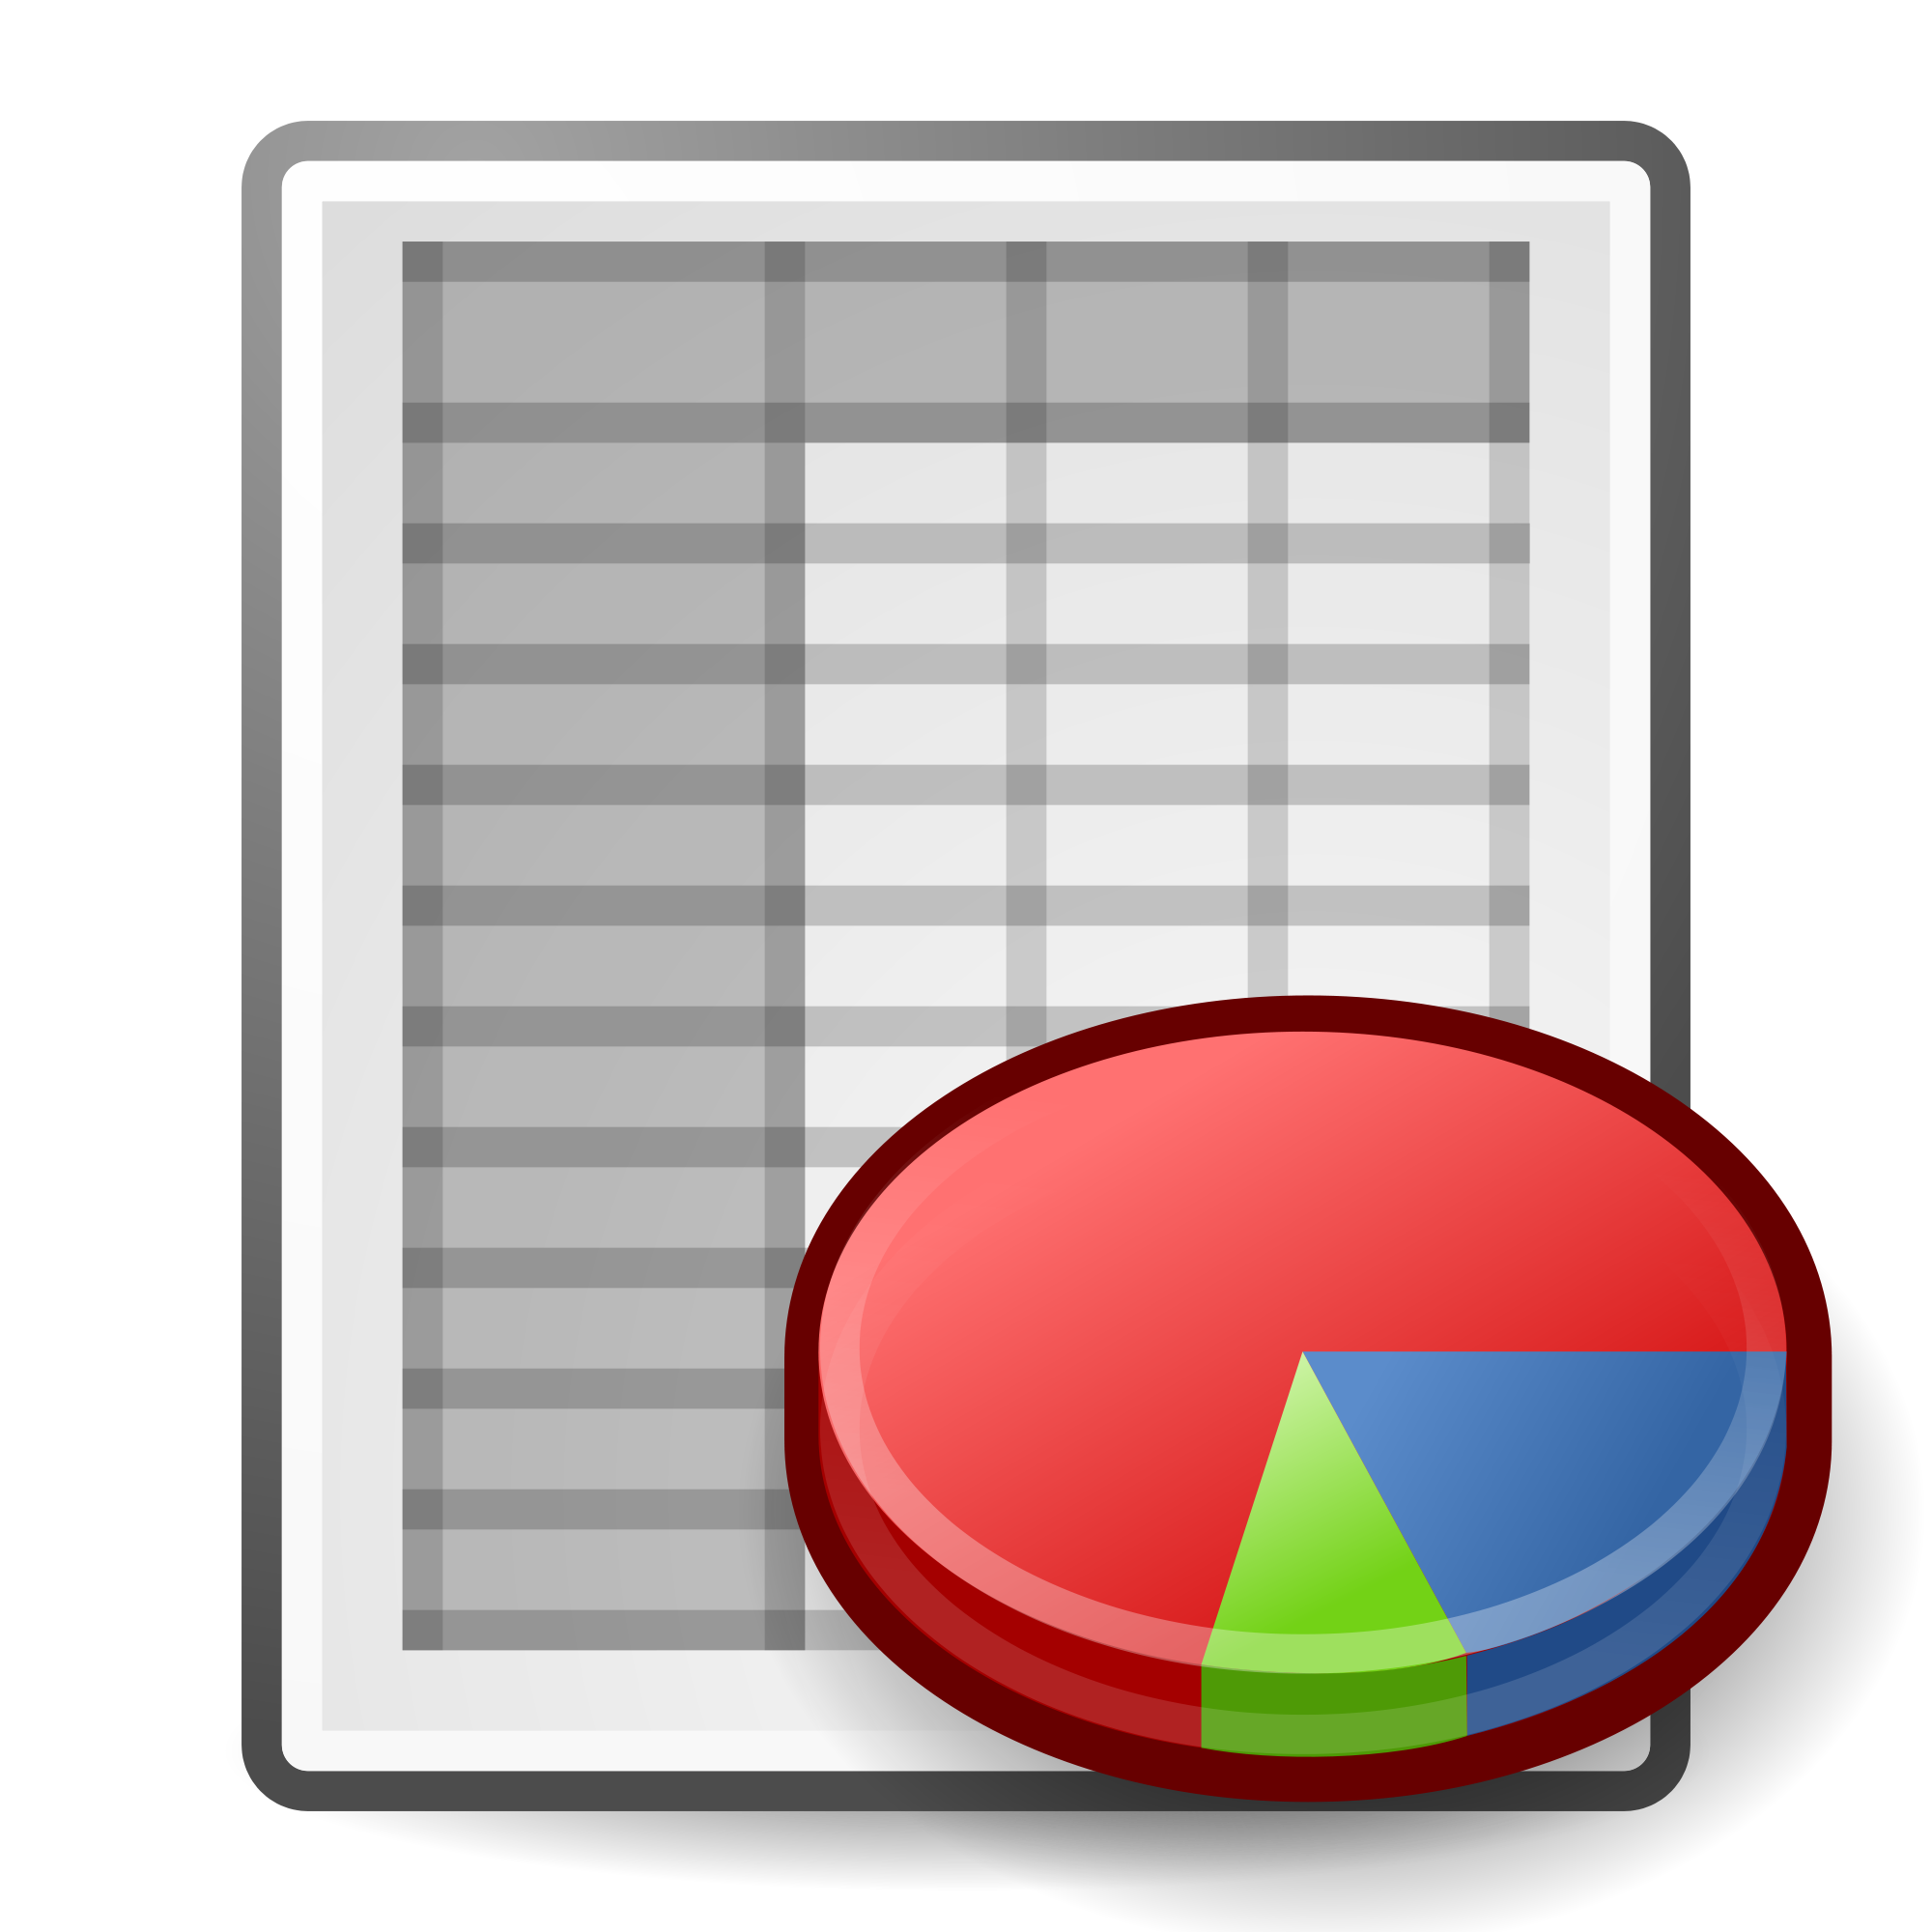 Free Google Spreadsheet Icon